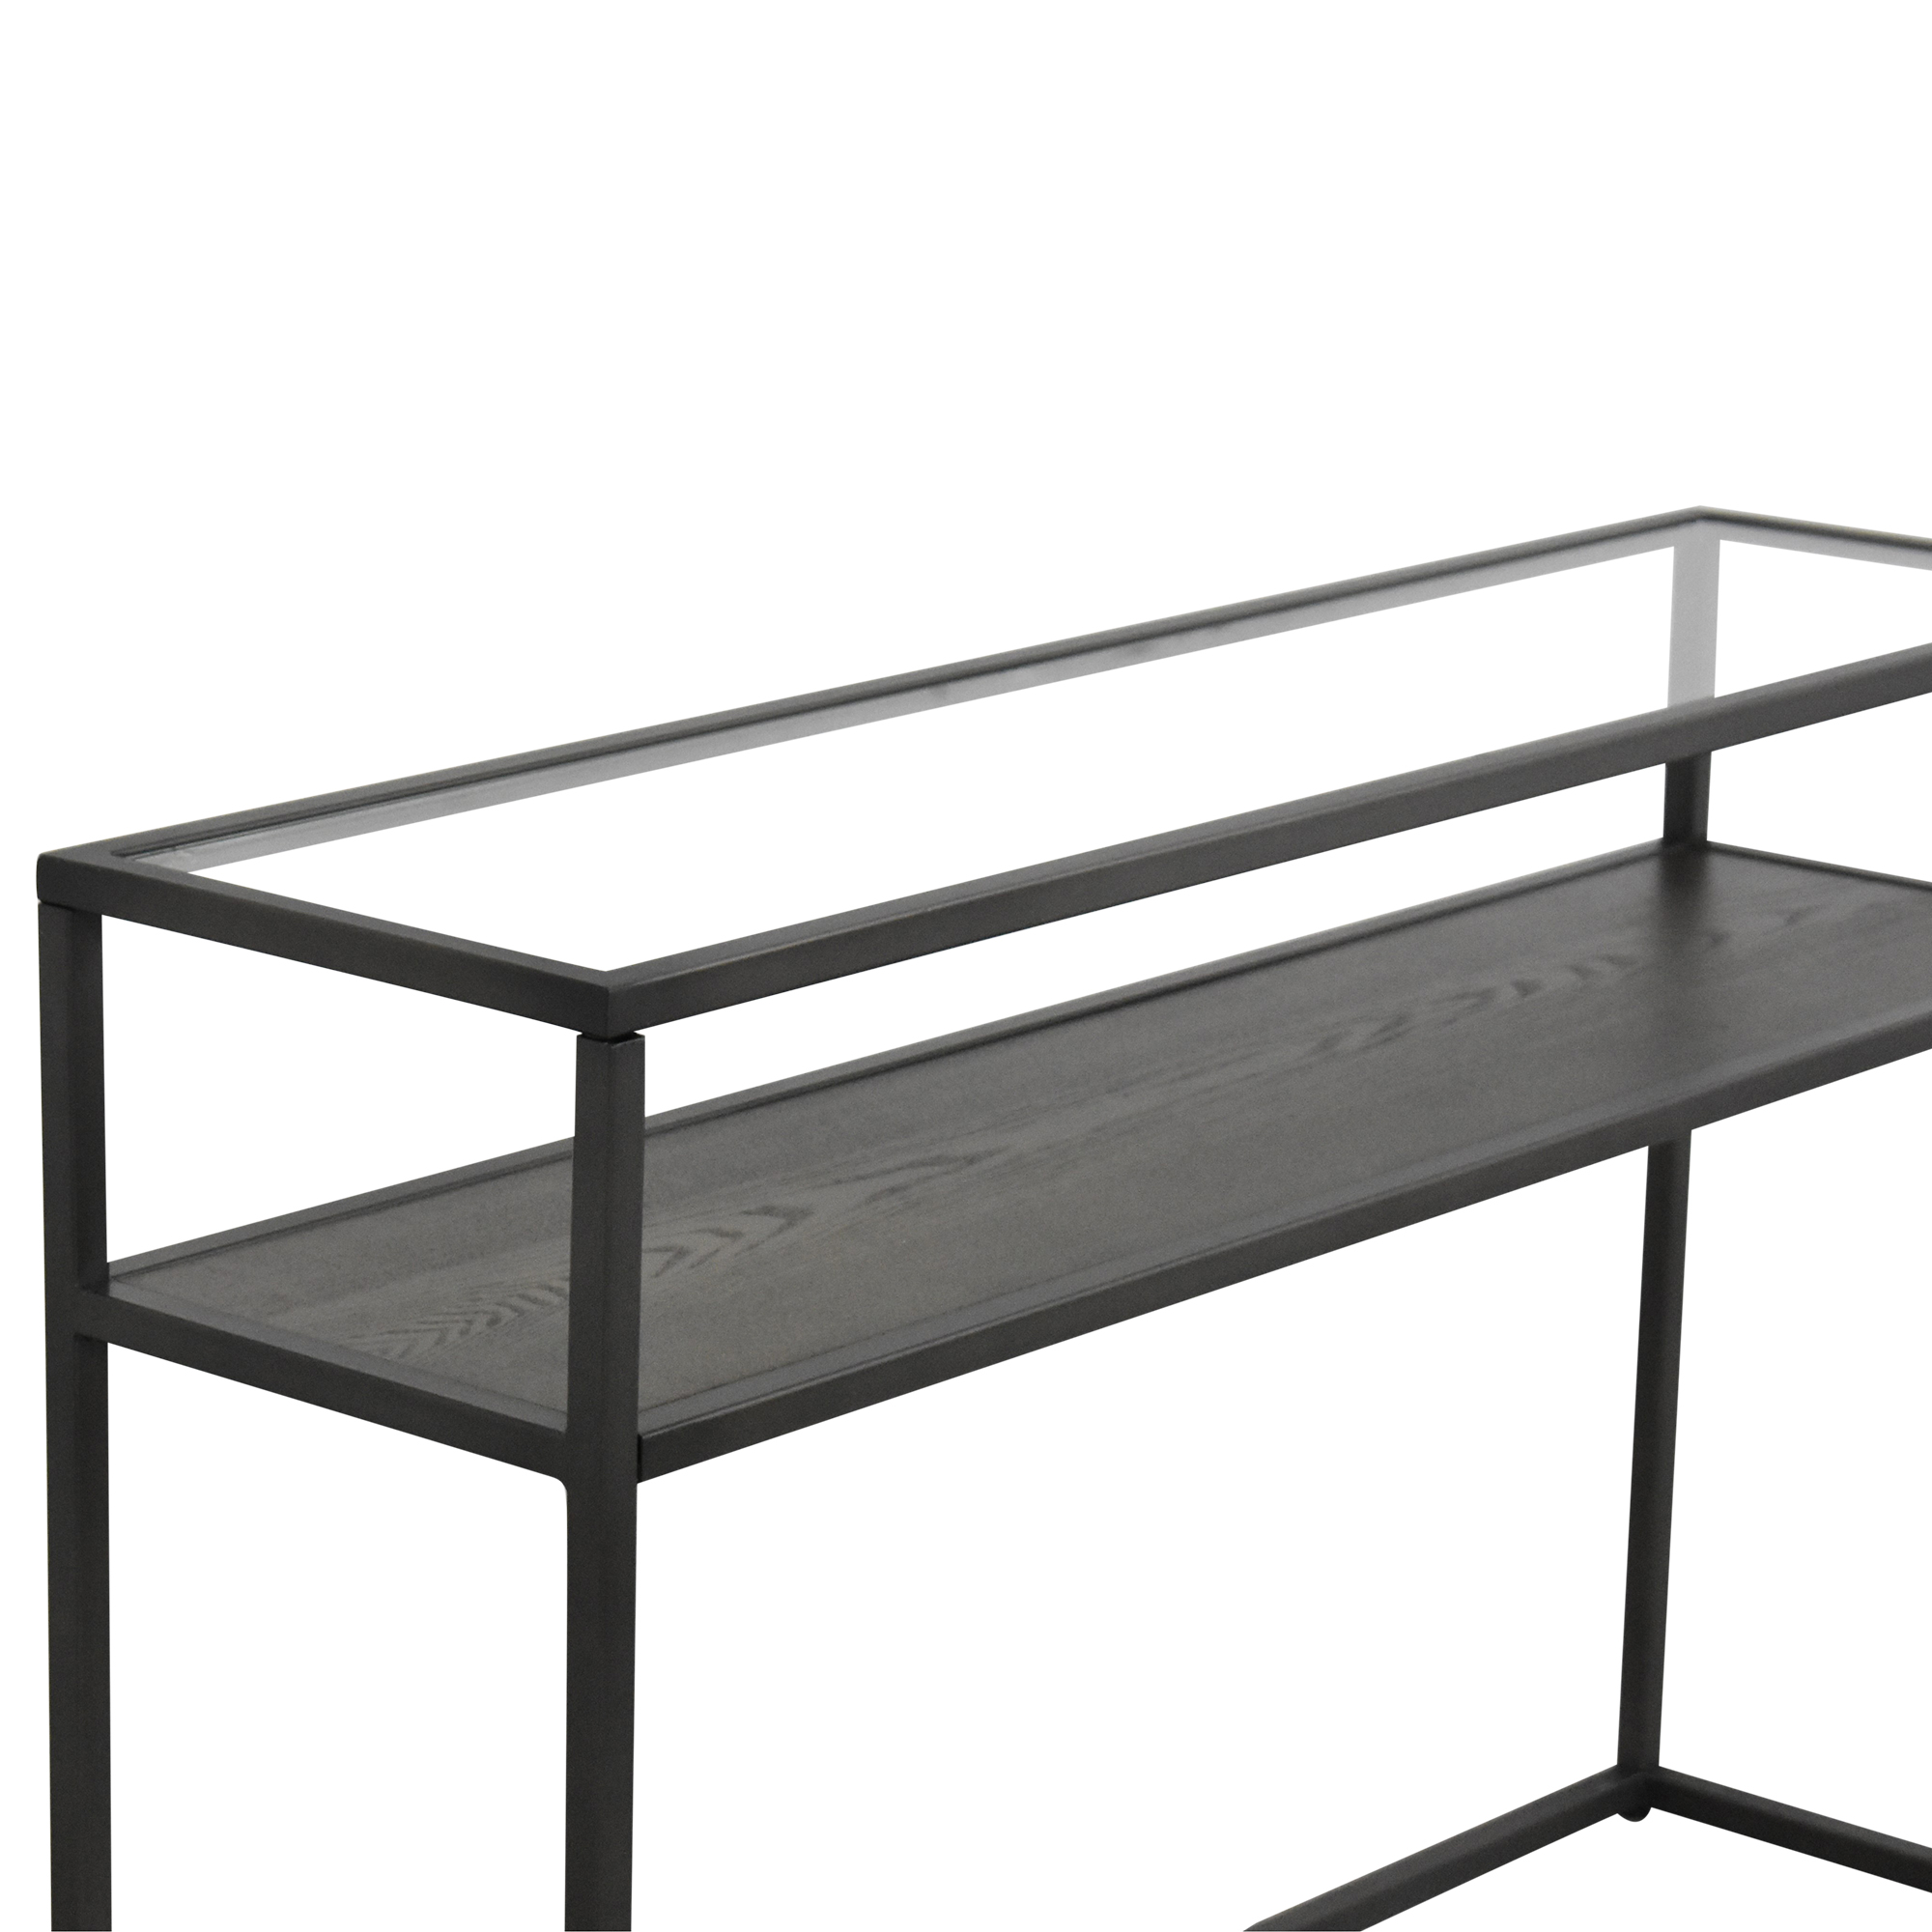 Crate & Barrel Crate & Barrel Switch Console Table for sale